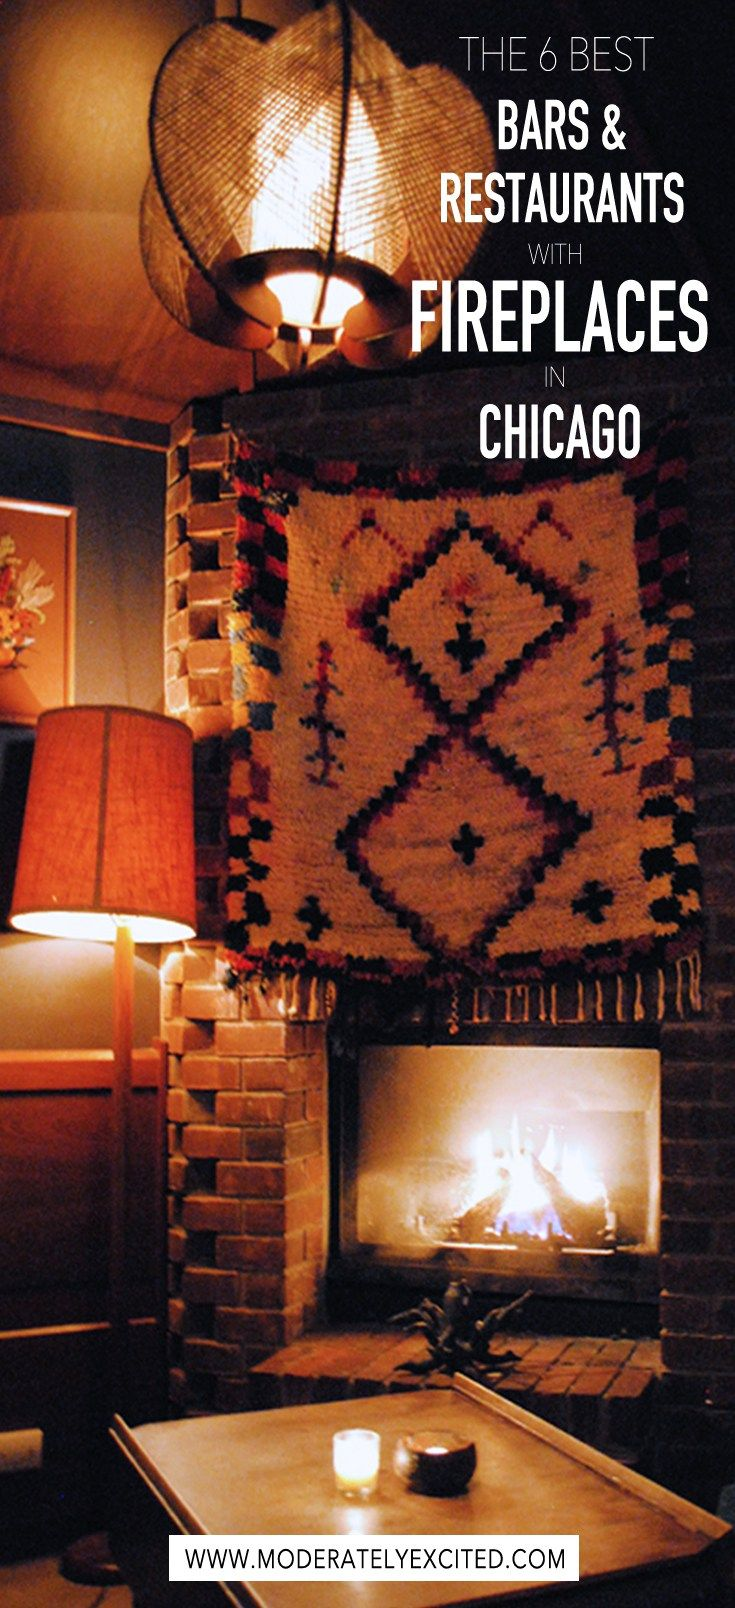 A definitive guide to the 6 best fireplaces in Chicago - the coziest bars and restaurants in the city for when you need some hygge in your life. Grab a cocktail or a book and check them out the next time you visit Chicago!